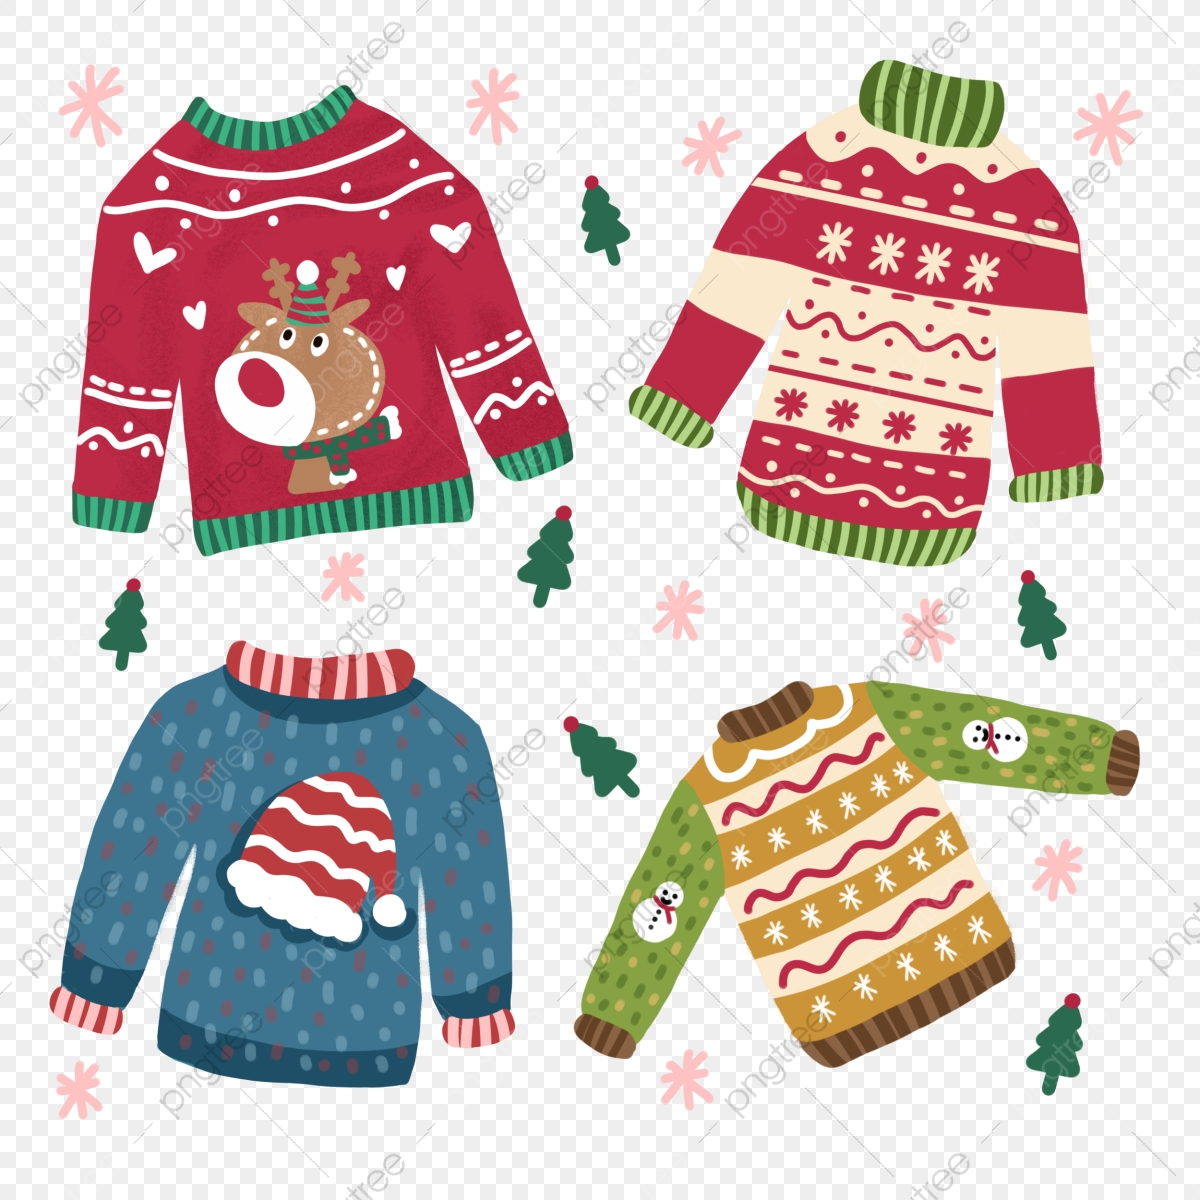 Illustration Elk Ugly Christmas Sweater Ugly Christmas Sweater Clipart Ugly Christmas Sweater Png Transparent Clipart Image And Psd File For Free Download